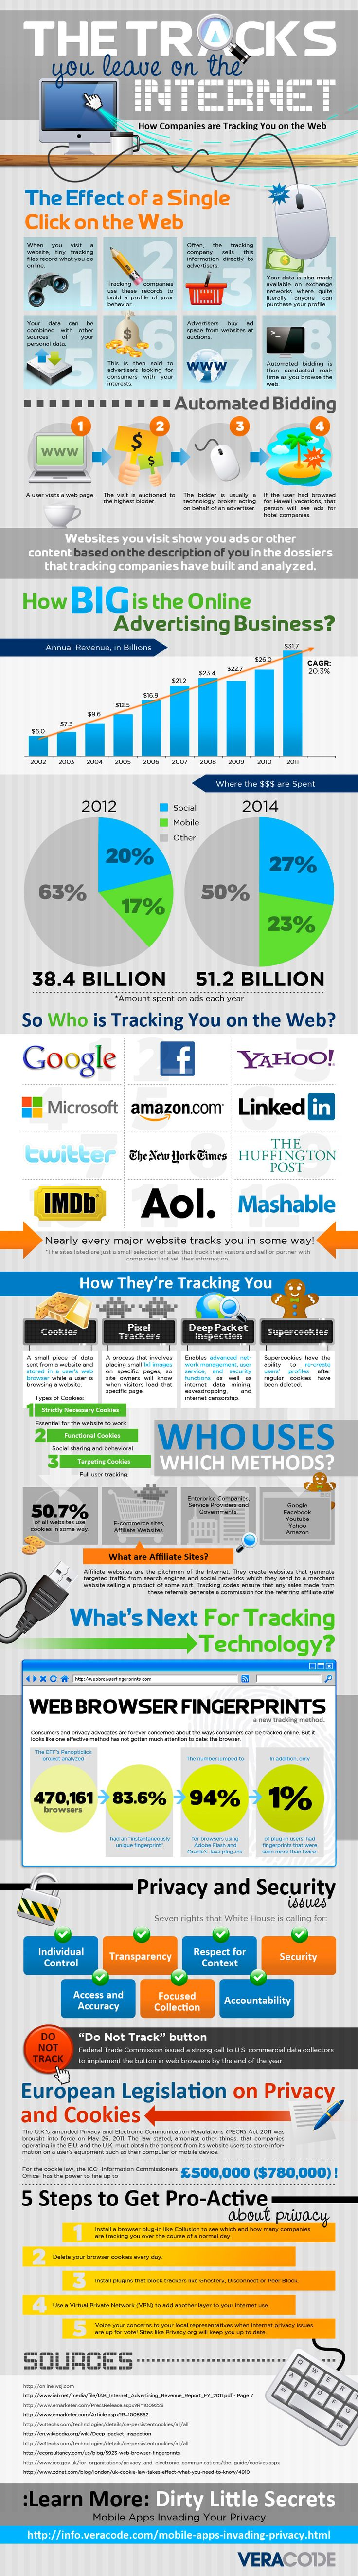 How companies track you on the web (Veracode, November 2012)